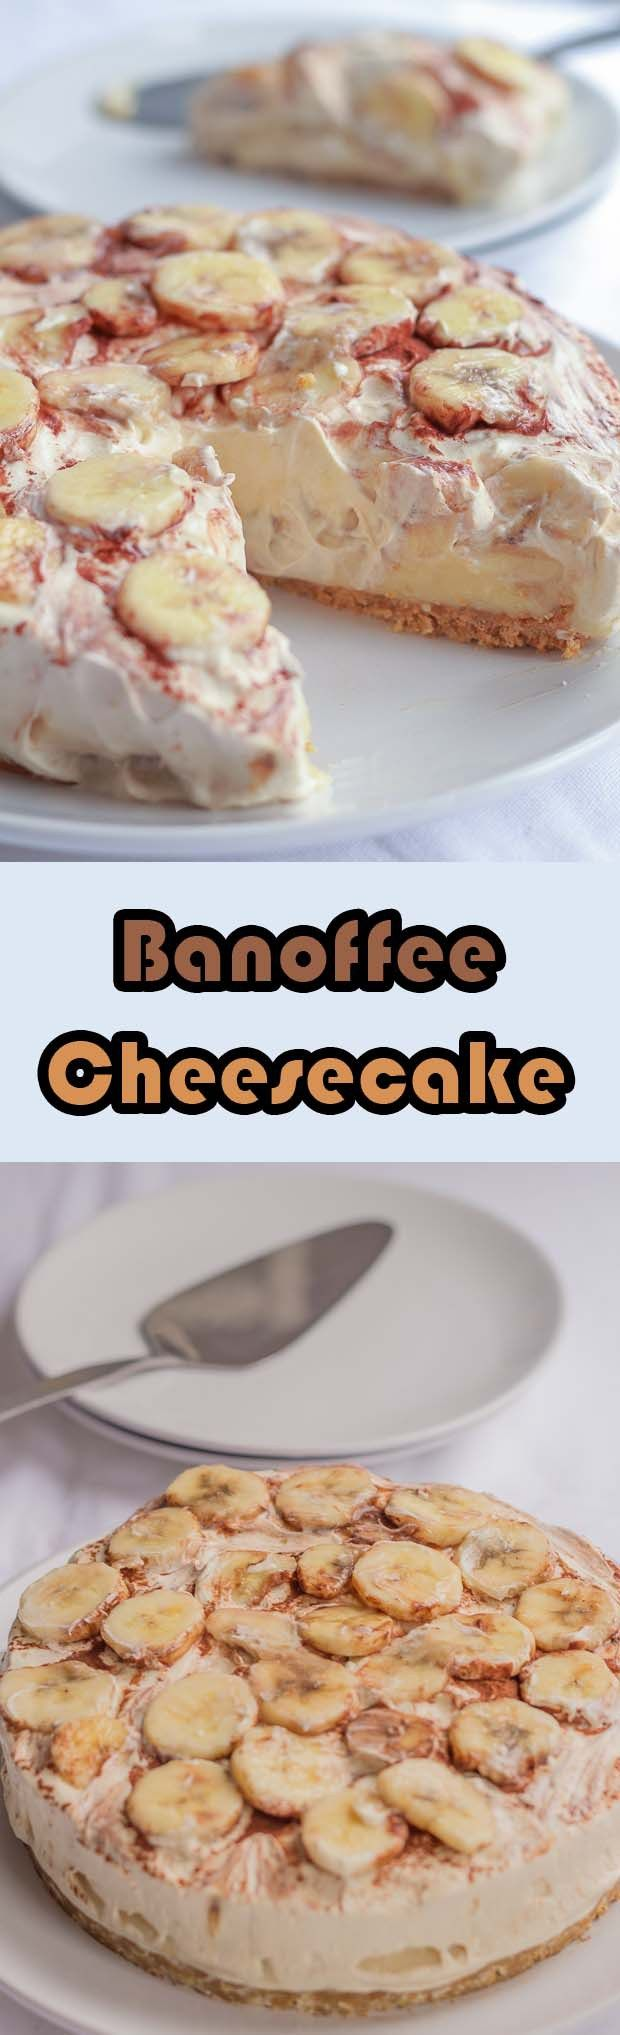 A lighter, but still as delicious, version of the classic indulgent banoffee pie made into a cheesecake.